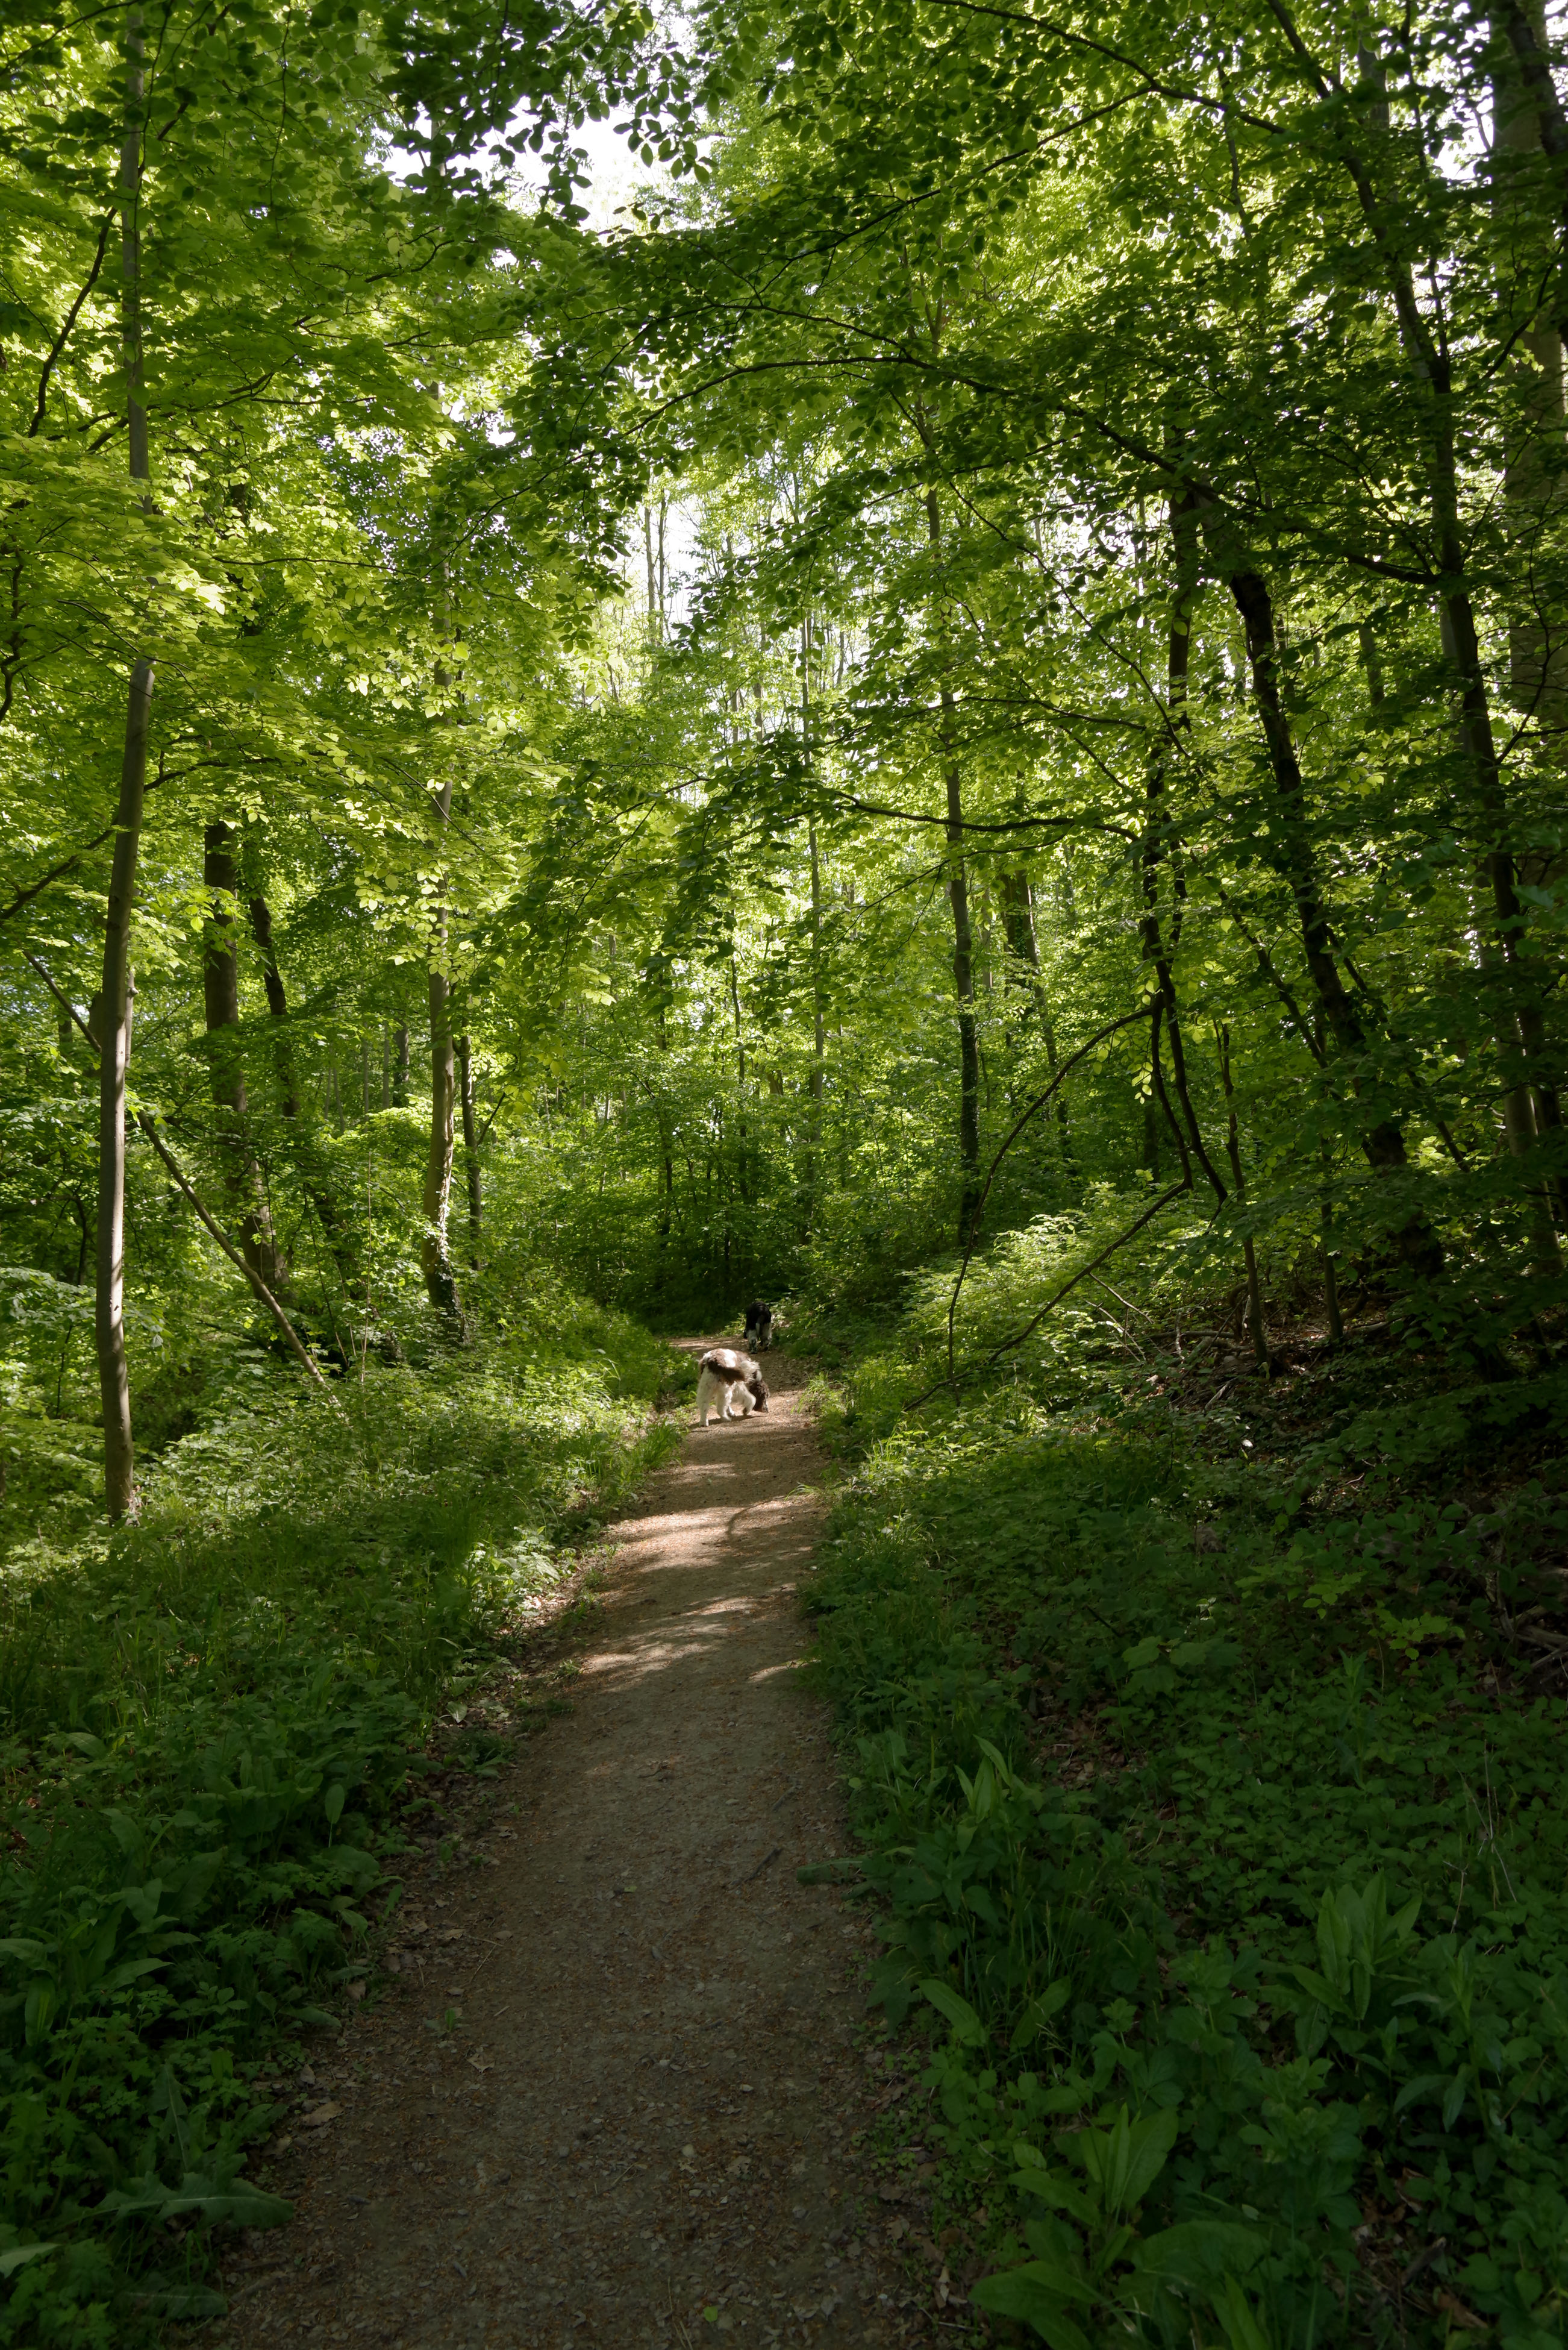 tree, forest, nature, walking, footpath, woodland, the way forward, green color, lush foliage, tranquility, wilderness, tranquil scene, day, road, outdoors, growth, adventure, plant, scenics, rural scene, full length, nature reserve, animal themes, beauty in nature, people, domestic animals, one person, grass, mammal